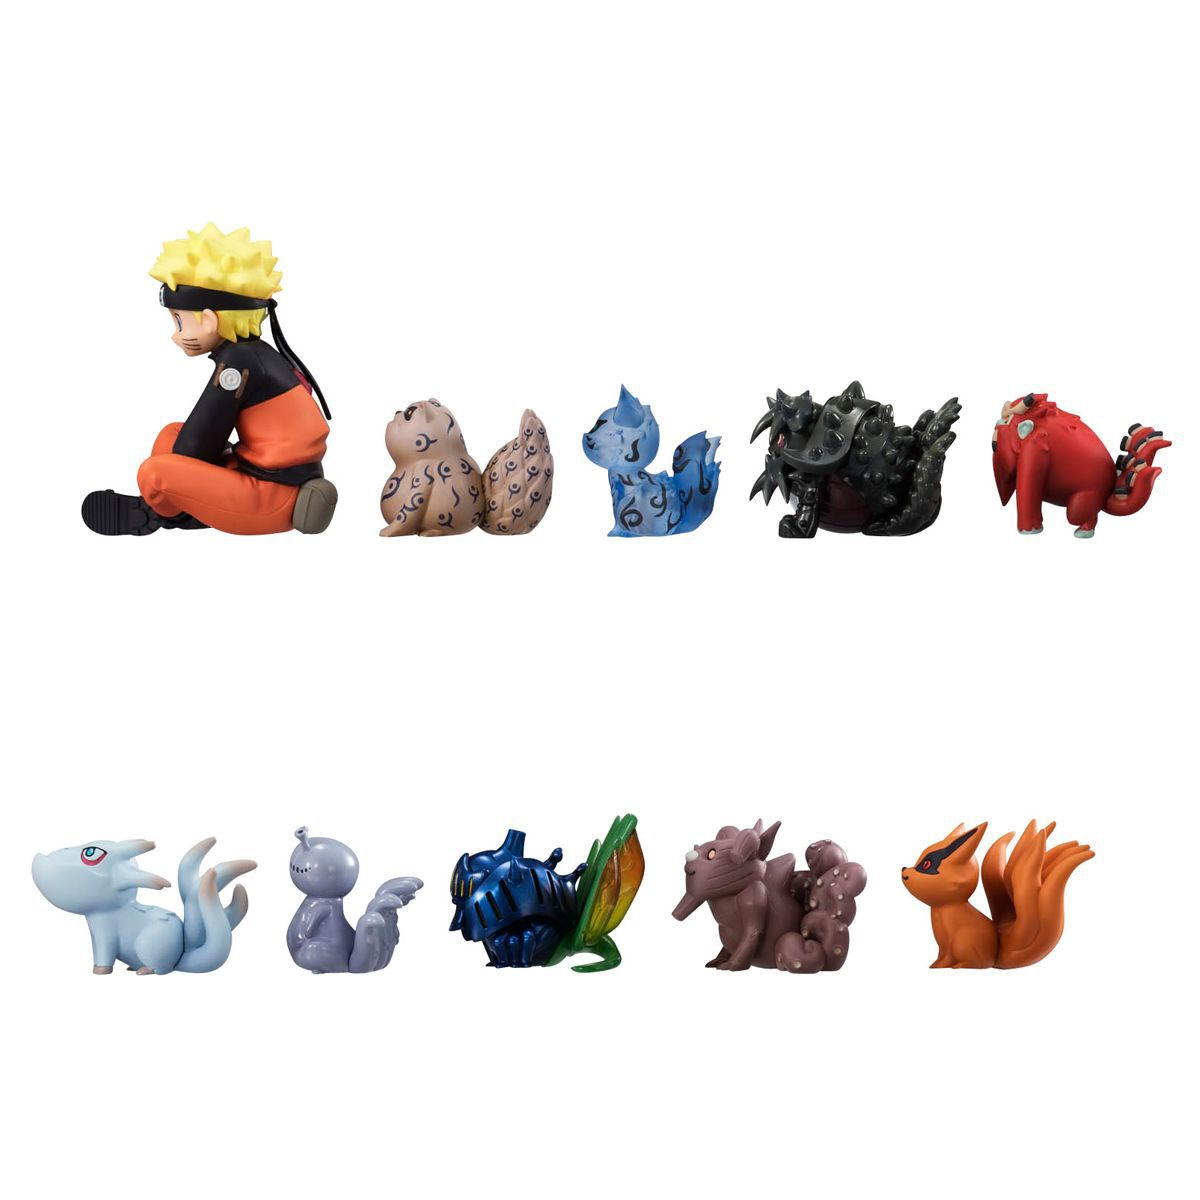 WVW 10pcs/Set Hot Sale Anime Heroes Naruto Uzumaki Naruto kyuubi Model PVC Toy Action Figure Decoration For Collection Gift anime naruto uzumaki naruto figure bond relation ver pvc action figure resin collection model toy doll gifts cosplay